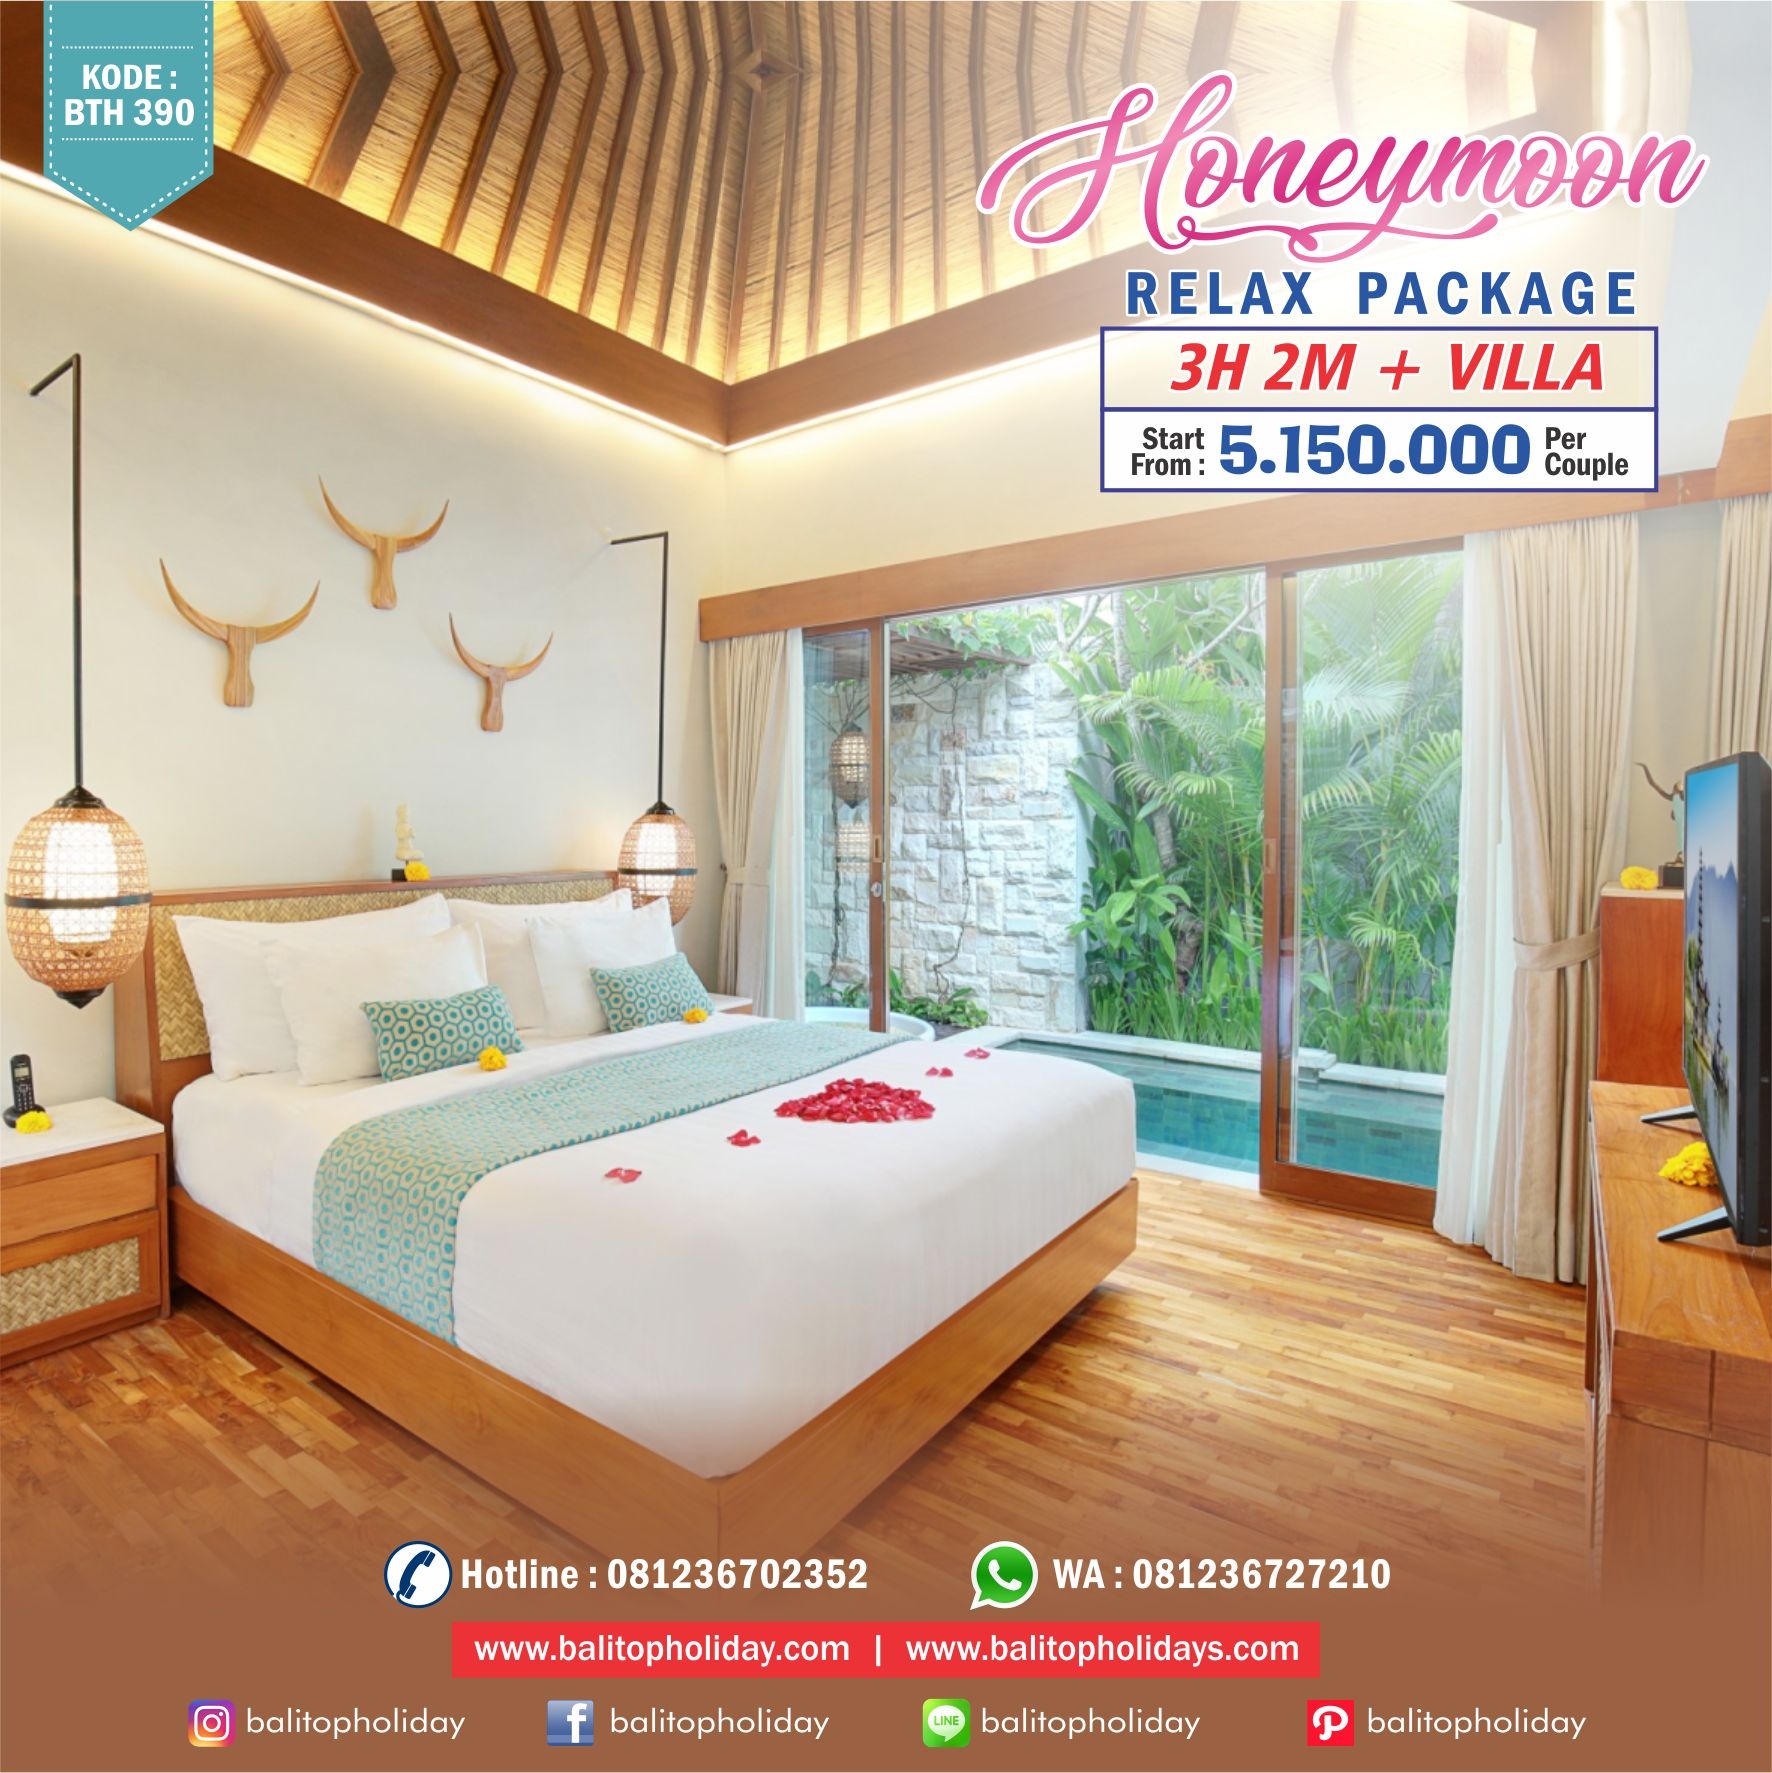 Honeymoon Relax Package Rute Santai 3H 2M BTH 390 (balitopholiday) (1)